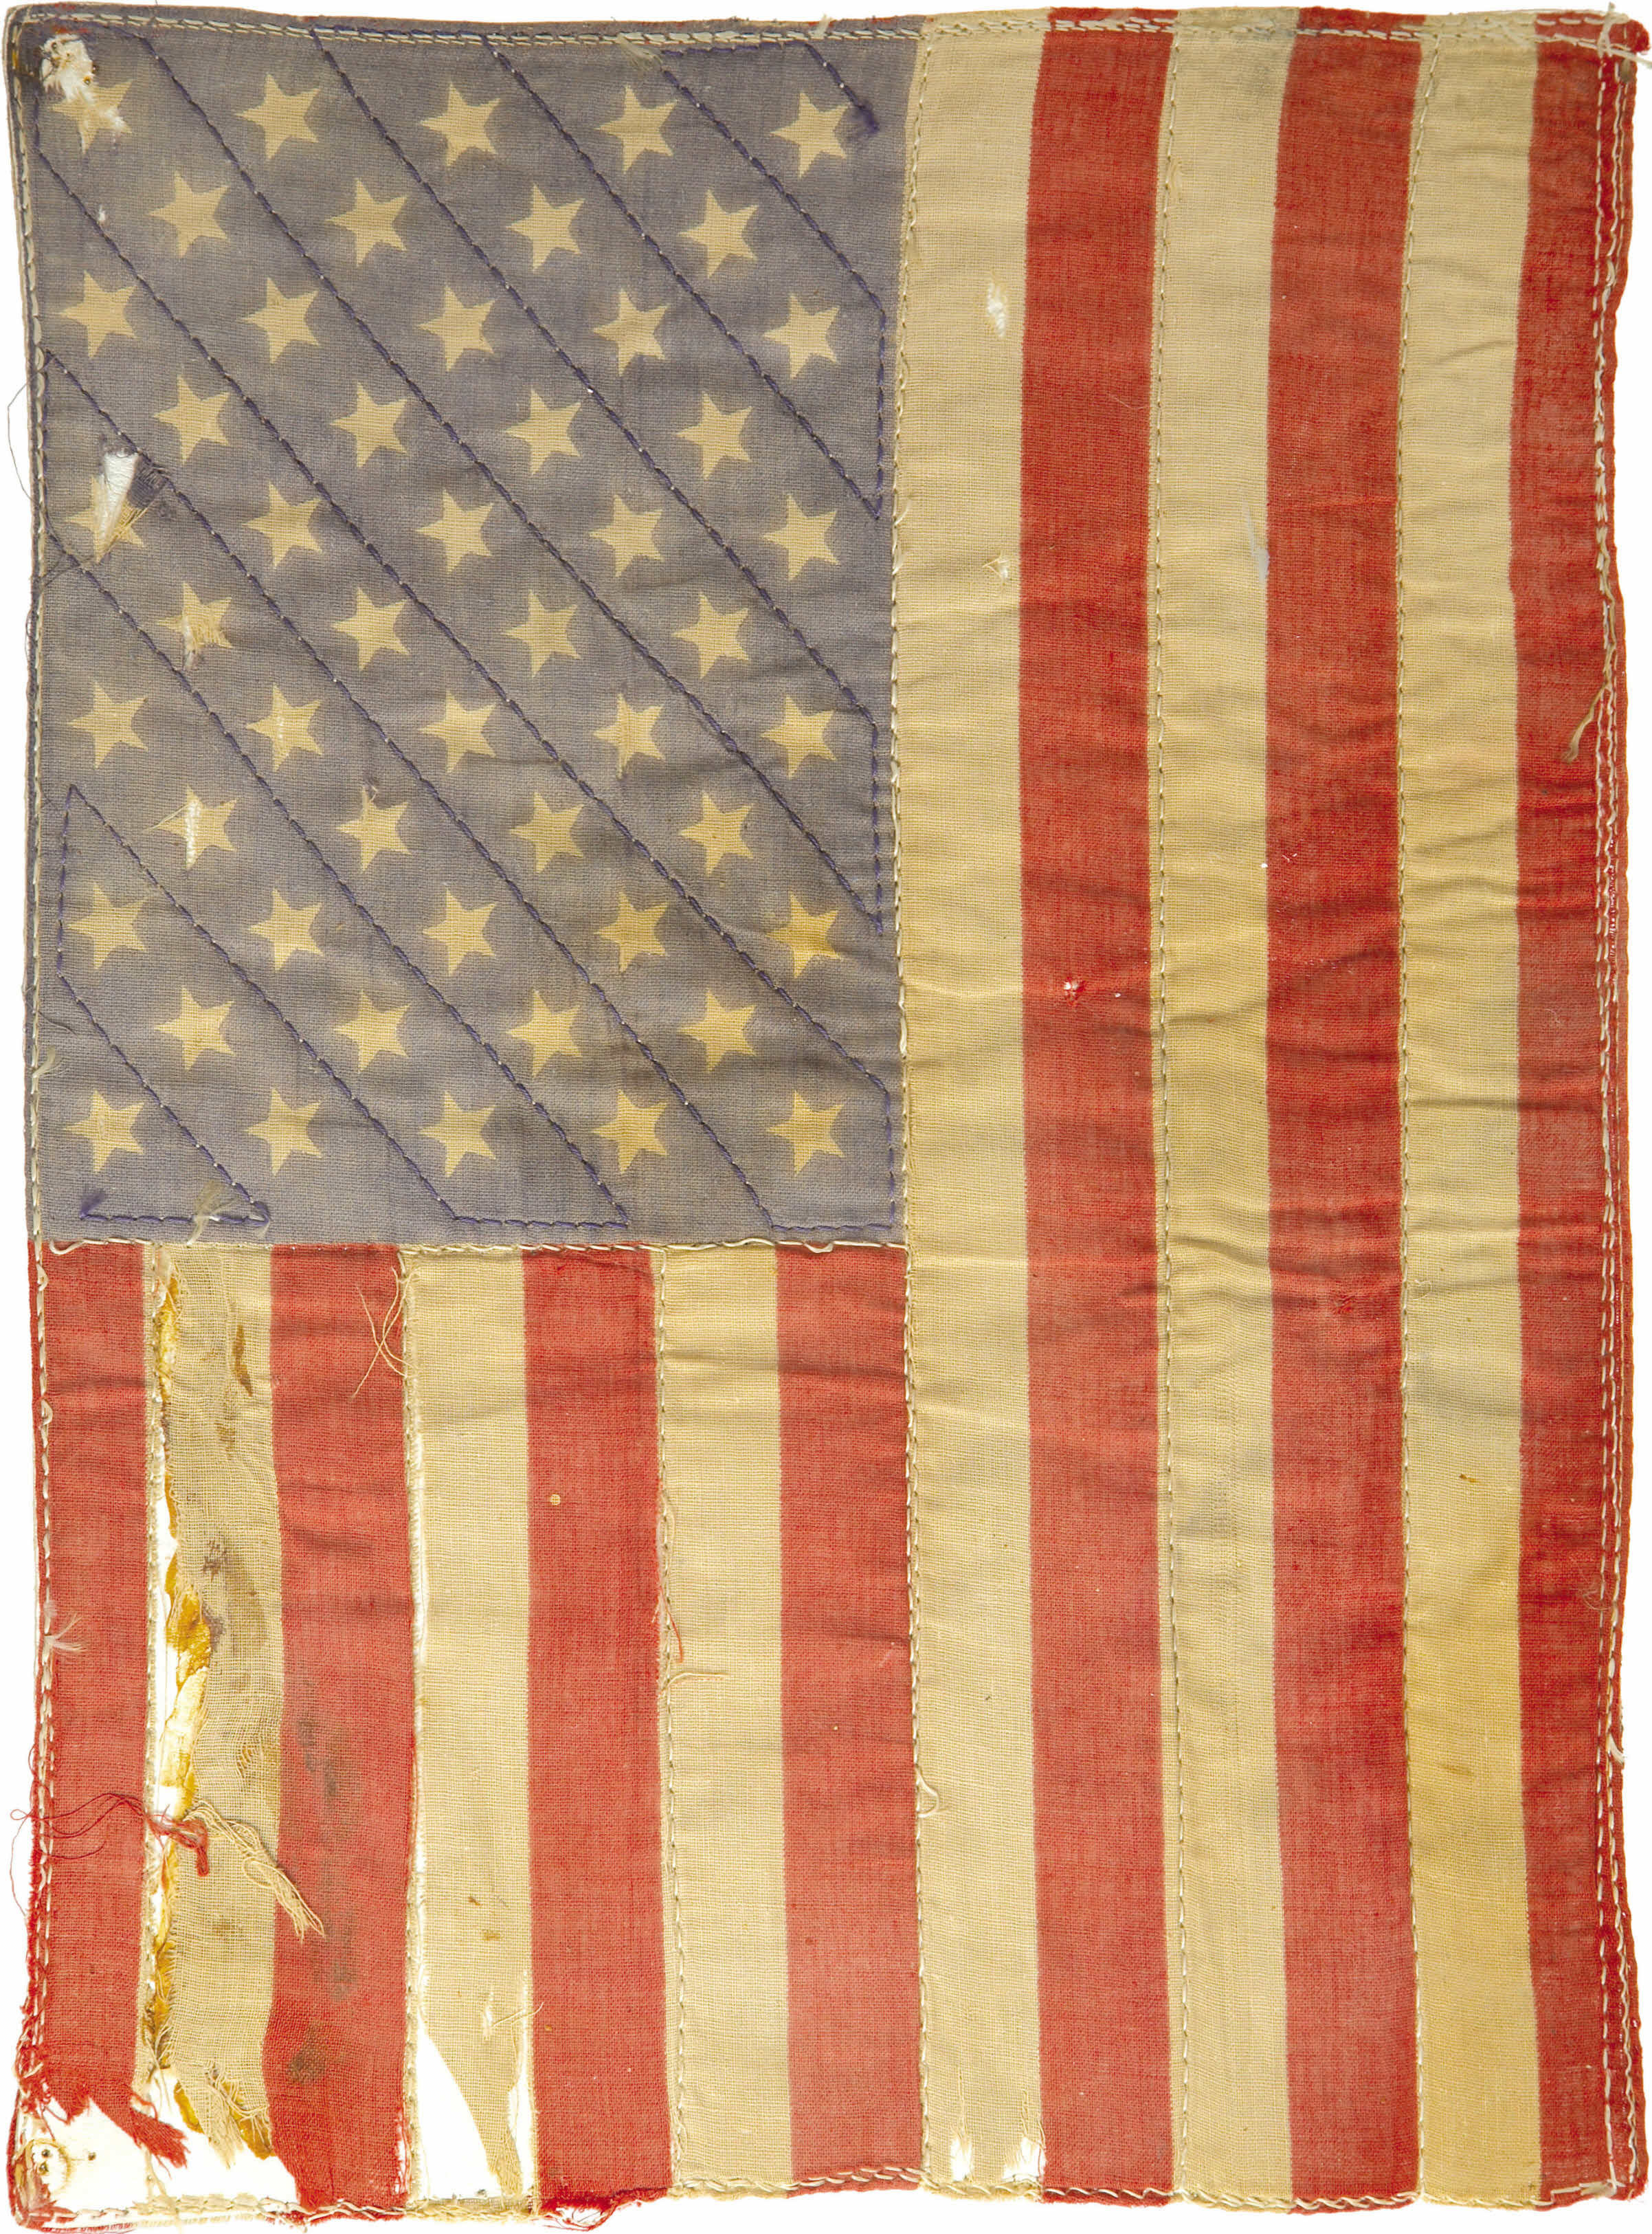 vertical positioning of the US flag